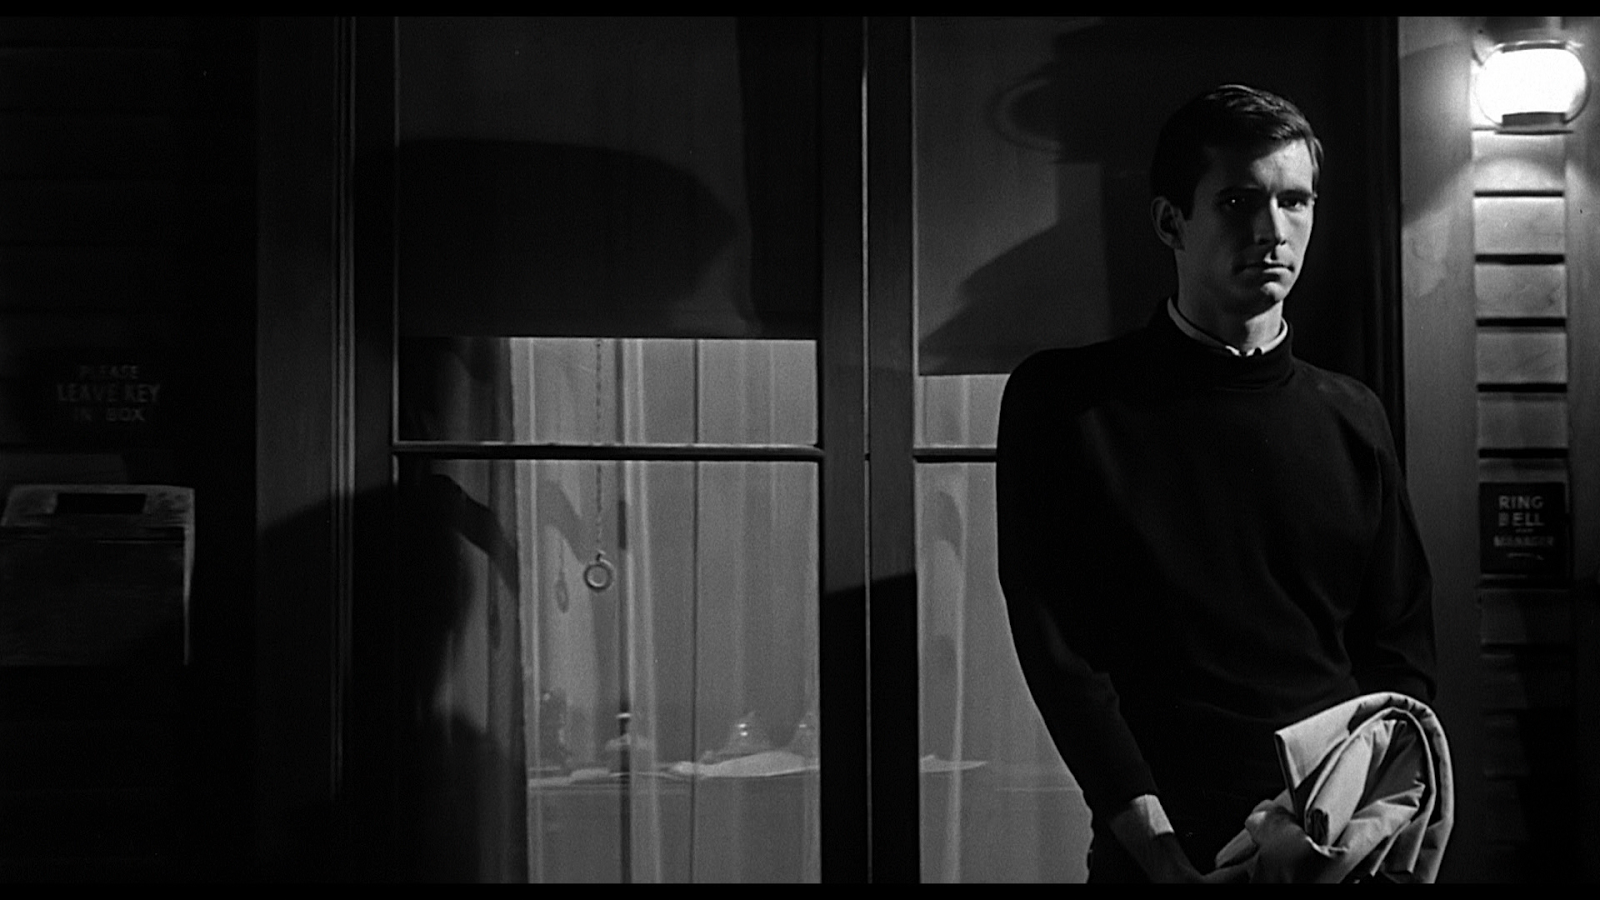 movies-psycho-alfred-hitchcock-movie-legends-anthony-perkins-hd-wallpapers.png